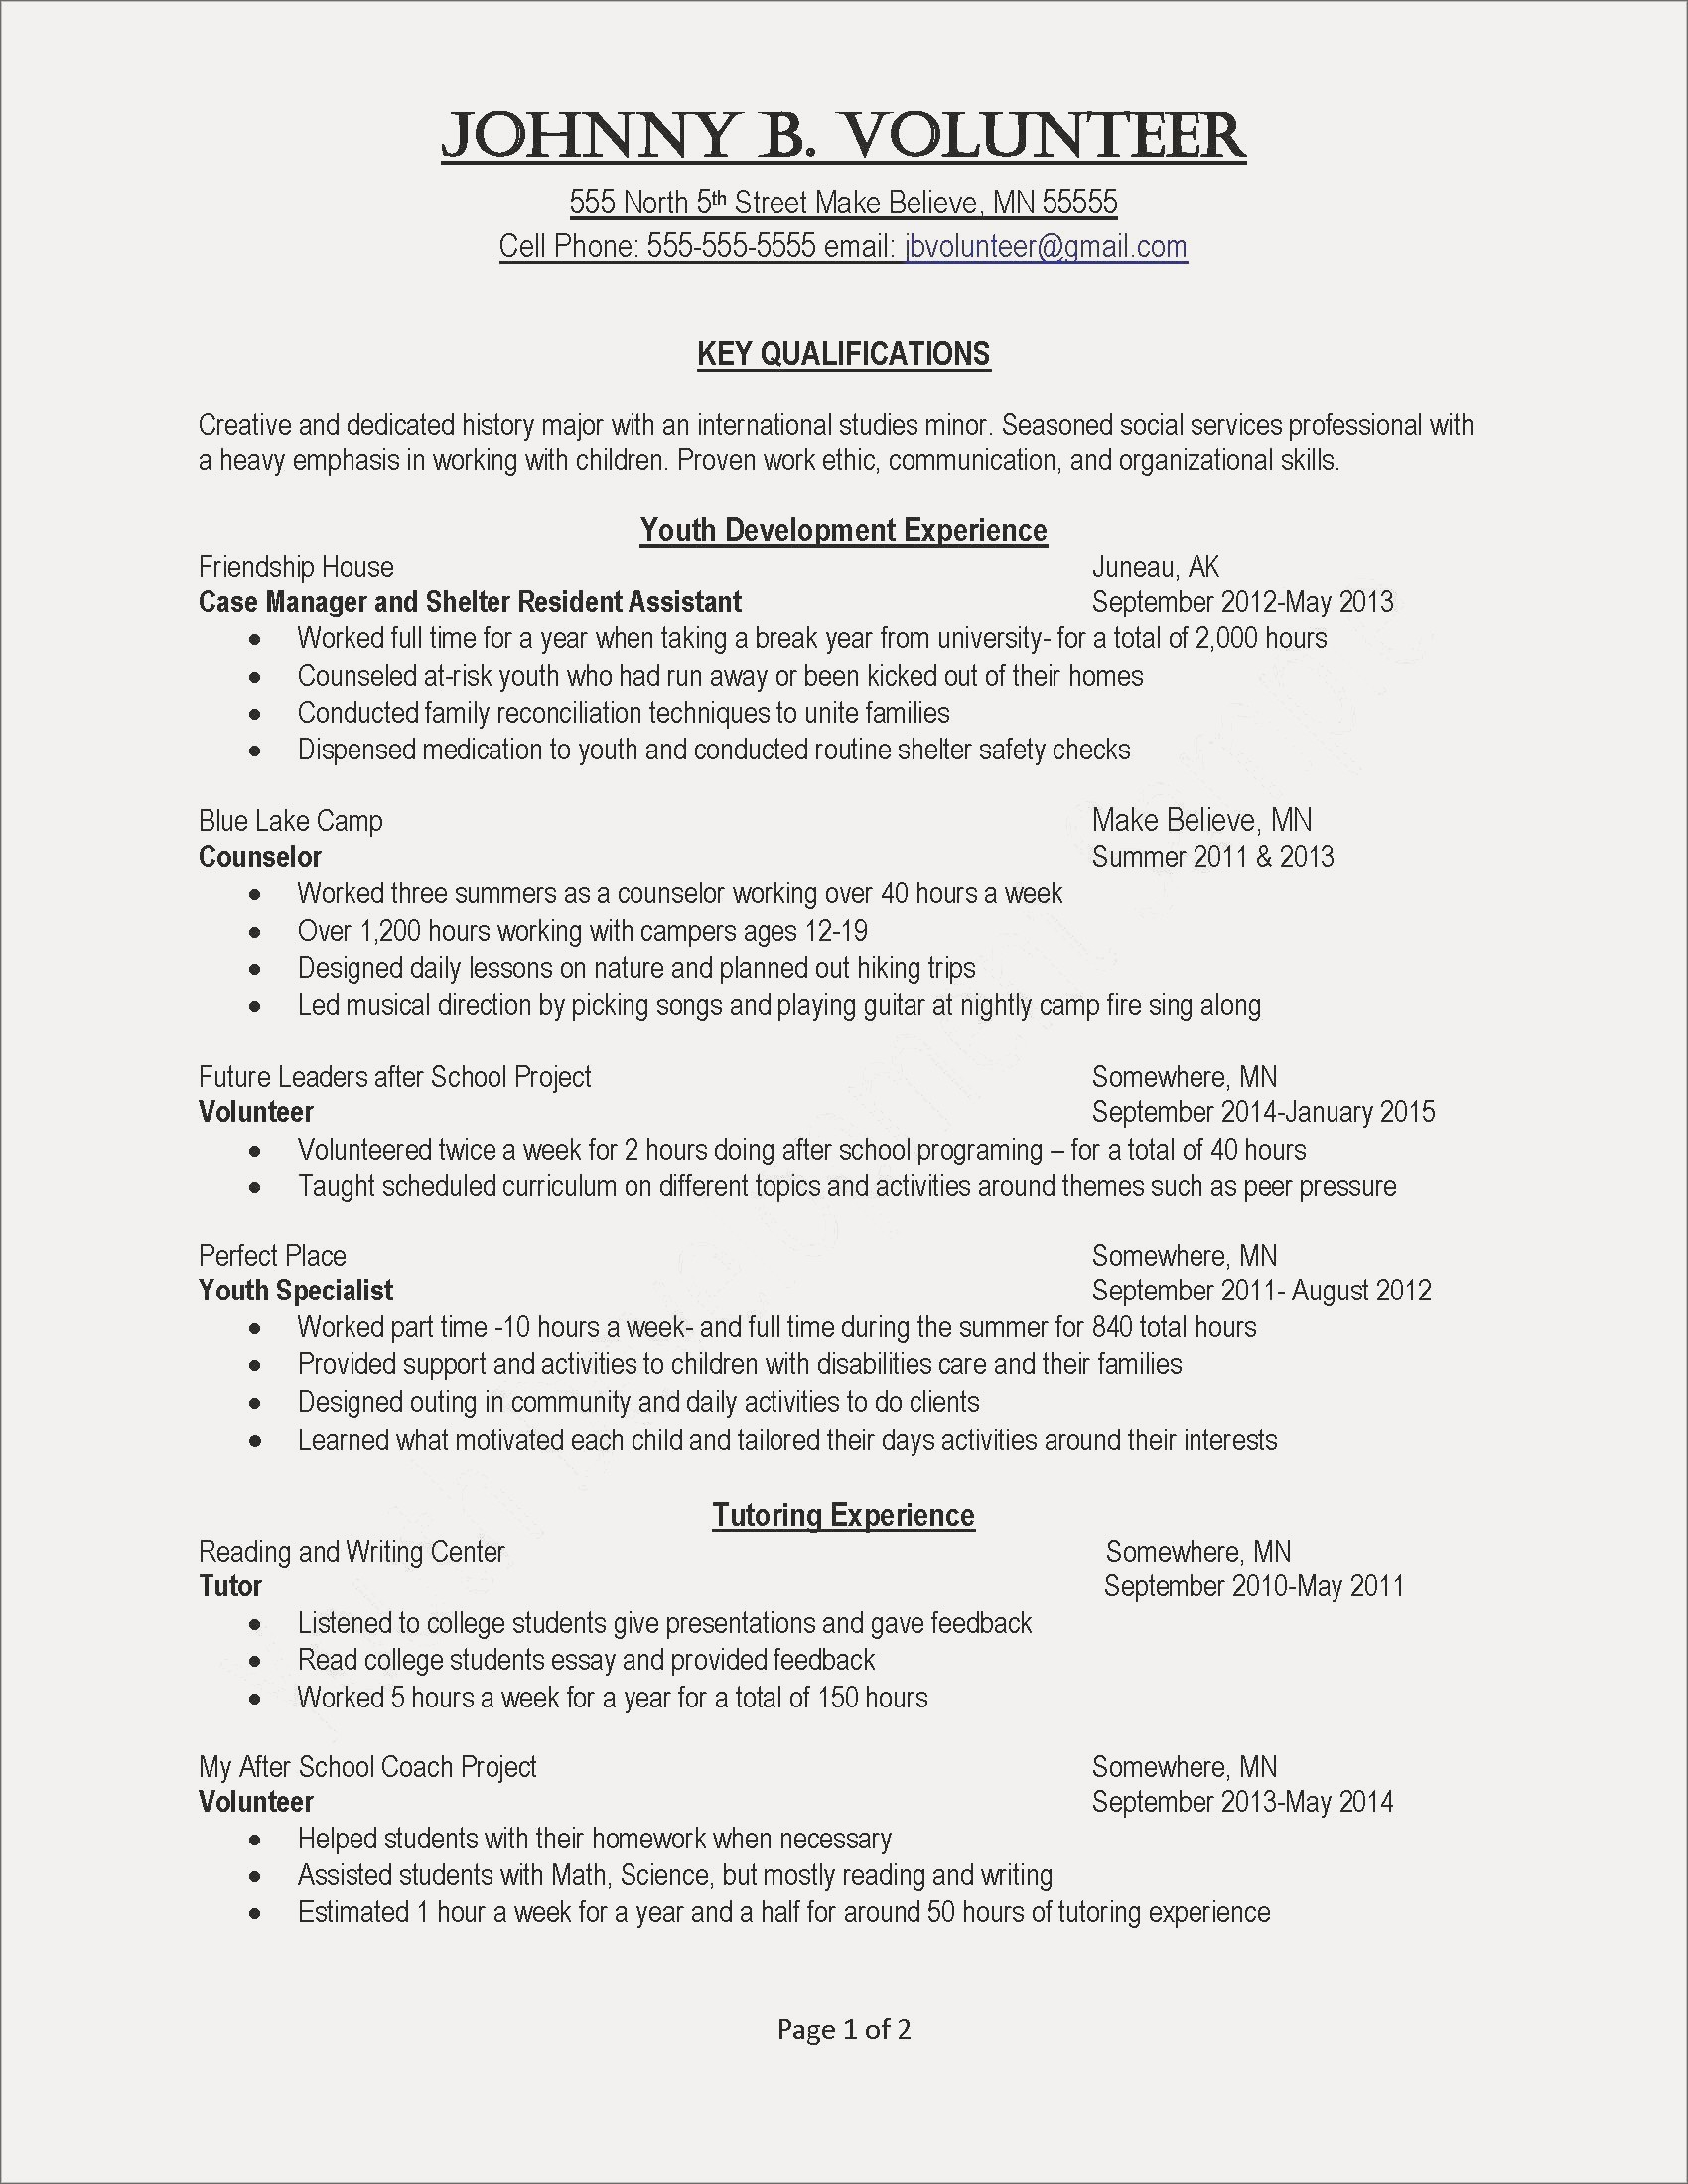 Skills to Write On A Resume - Excellent Essay Examples New Essay Example Save Resumes Skills